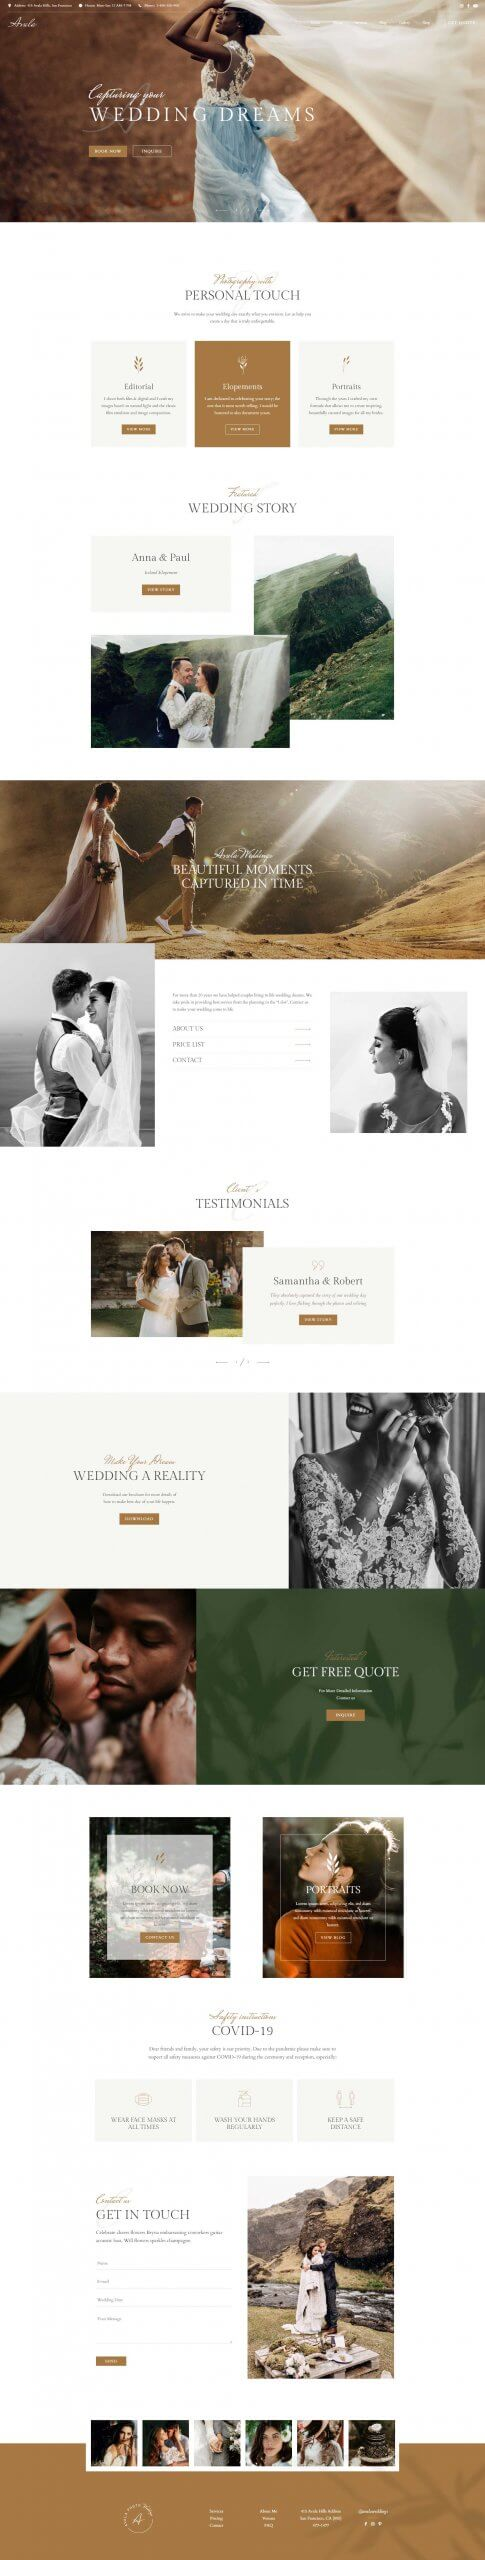 http://avala.bold-themes.com/wp-content/uploads/2021/02/Winter-Home-03-scaled.jpg